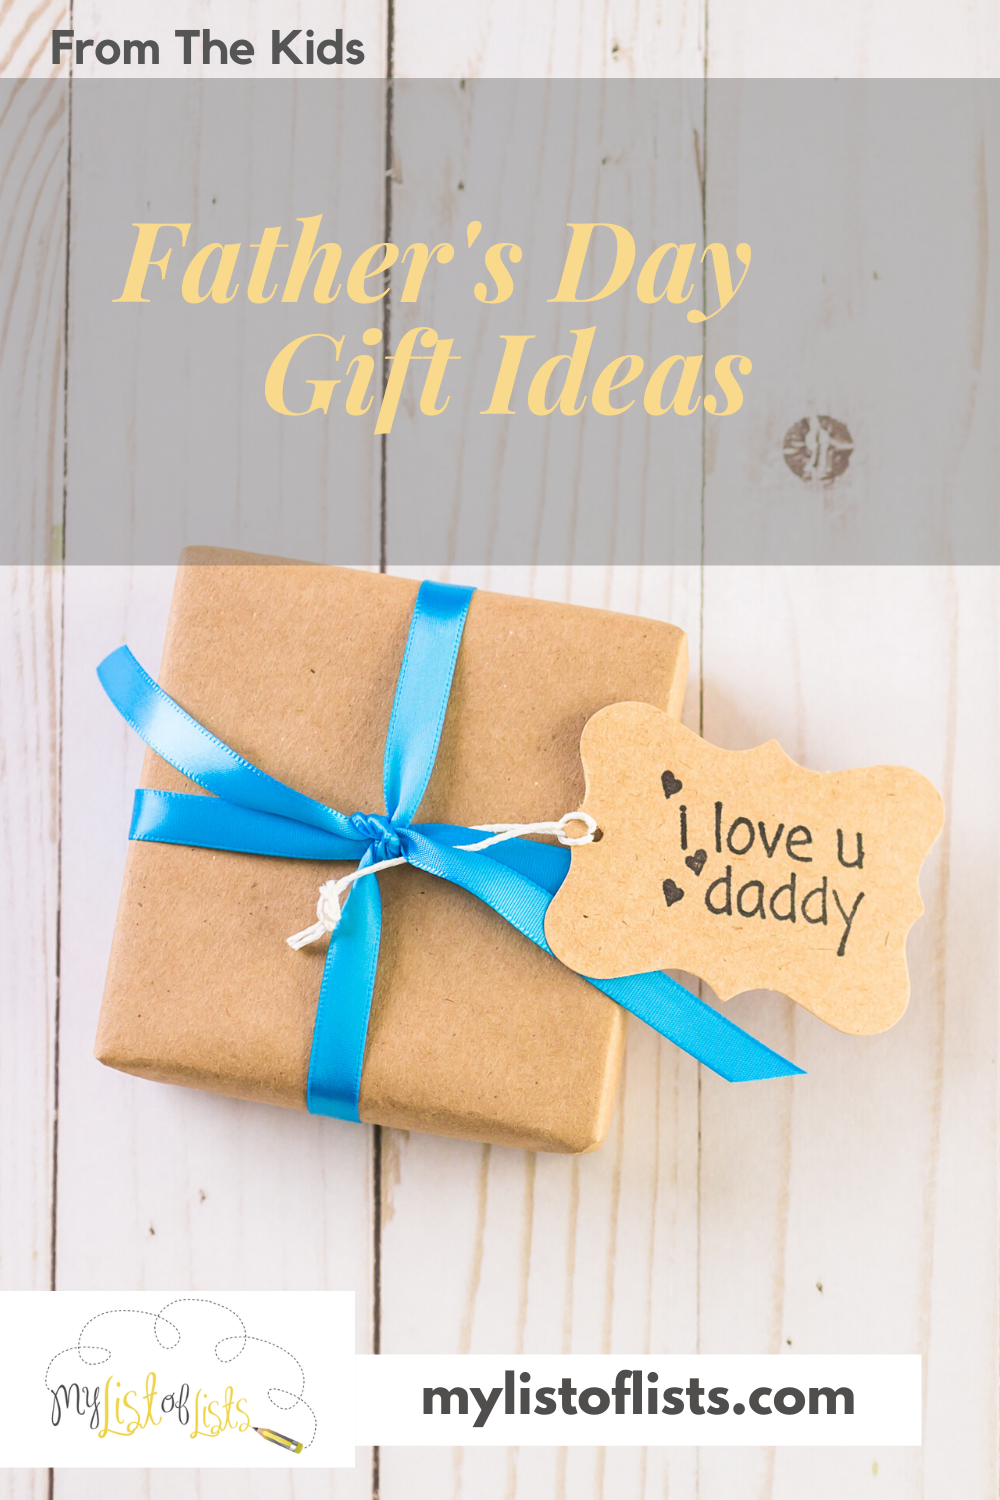 Most Dads love to receive handmade gifts from their kids. It's these things that become so nostalgic later on. Check out these incredible Fathers Day gift ideas from kids that they can make themselves in the comfort of your own home. #mylistoflistsblog #giftideas #diy